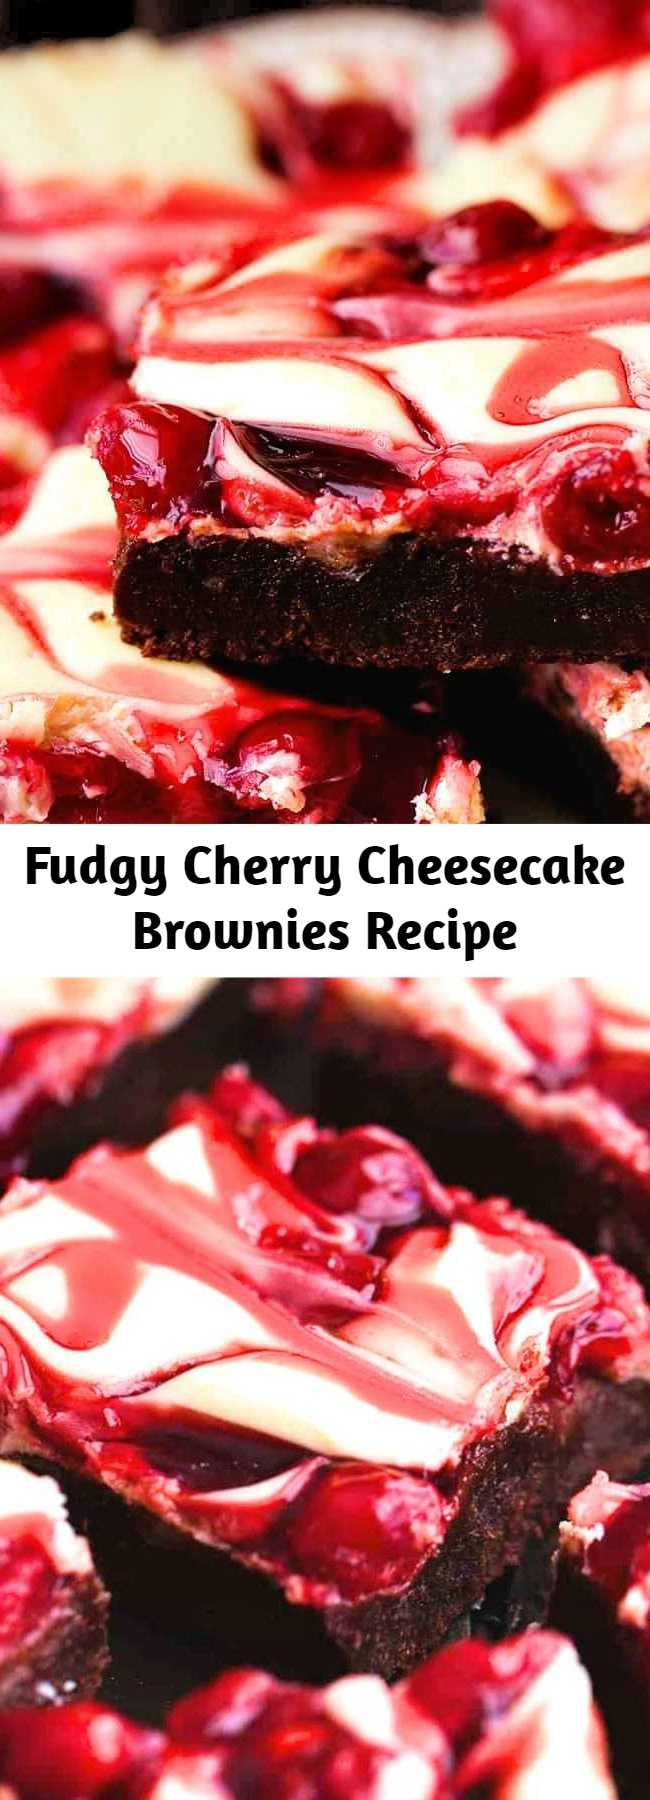 Fudgy Cherry Cheesecake Brownies Recipe - Fudgy brownies with cheesecake and premium Lucky Leaf® pie filling swirled on top! These brownies are rich and creamy and have three delicious desserts in one!